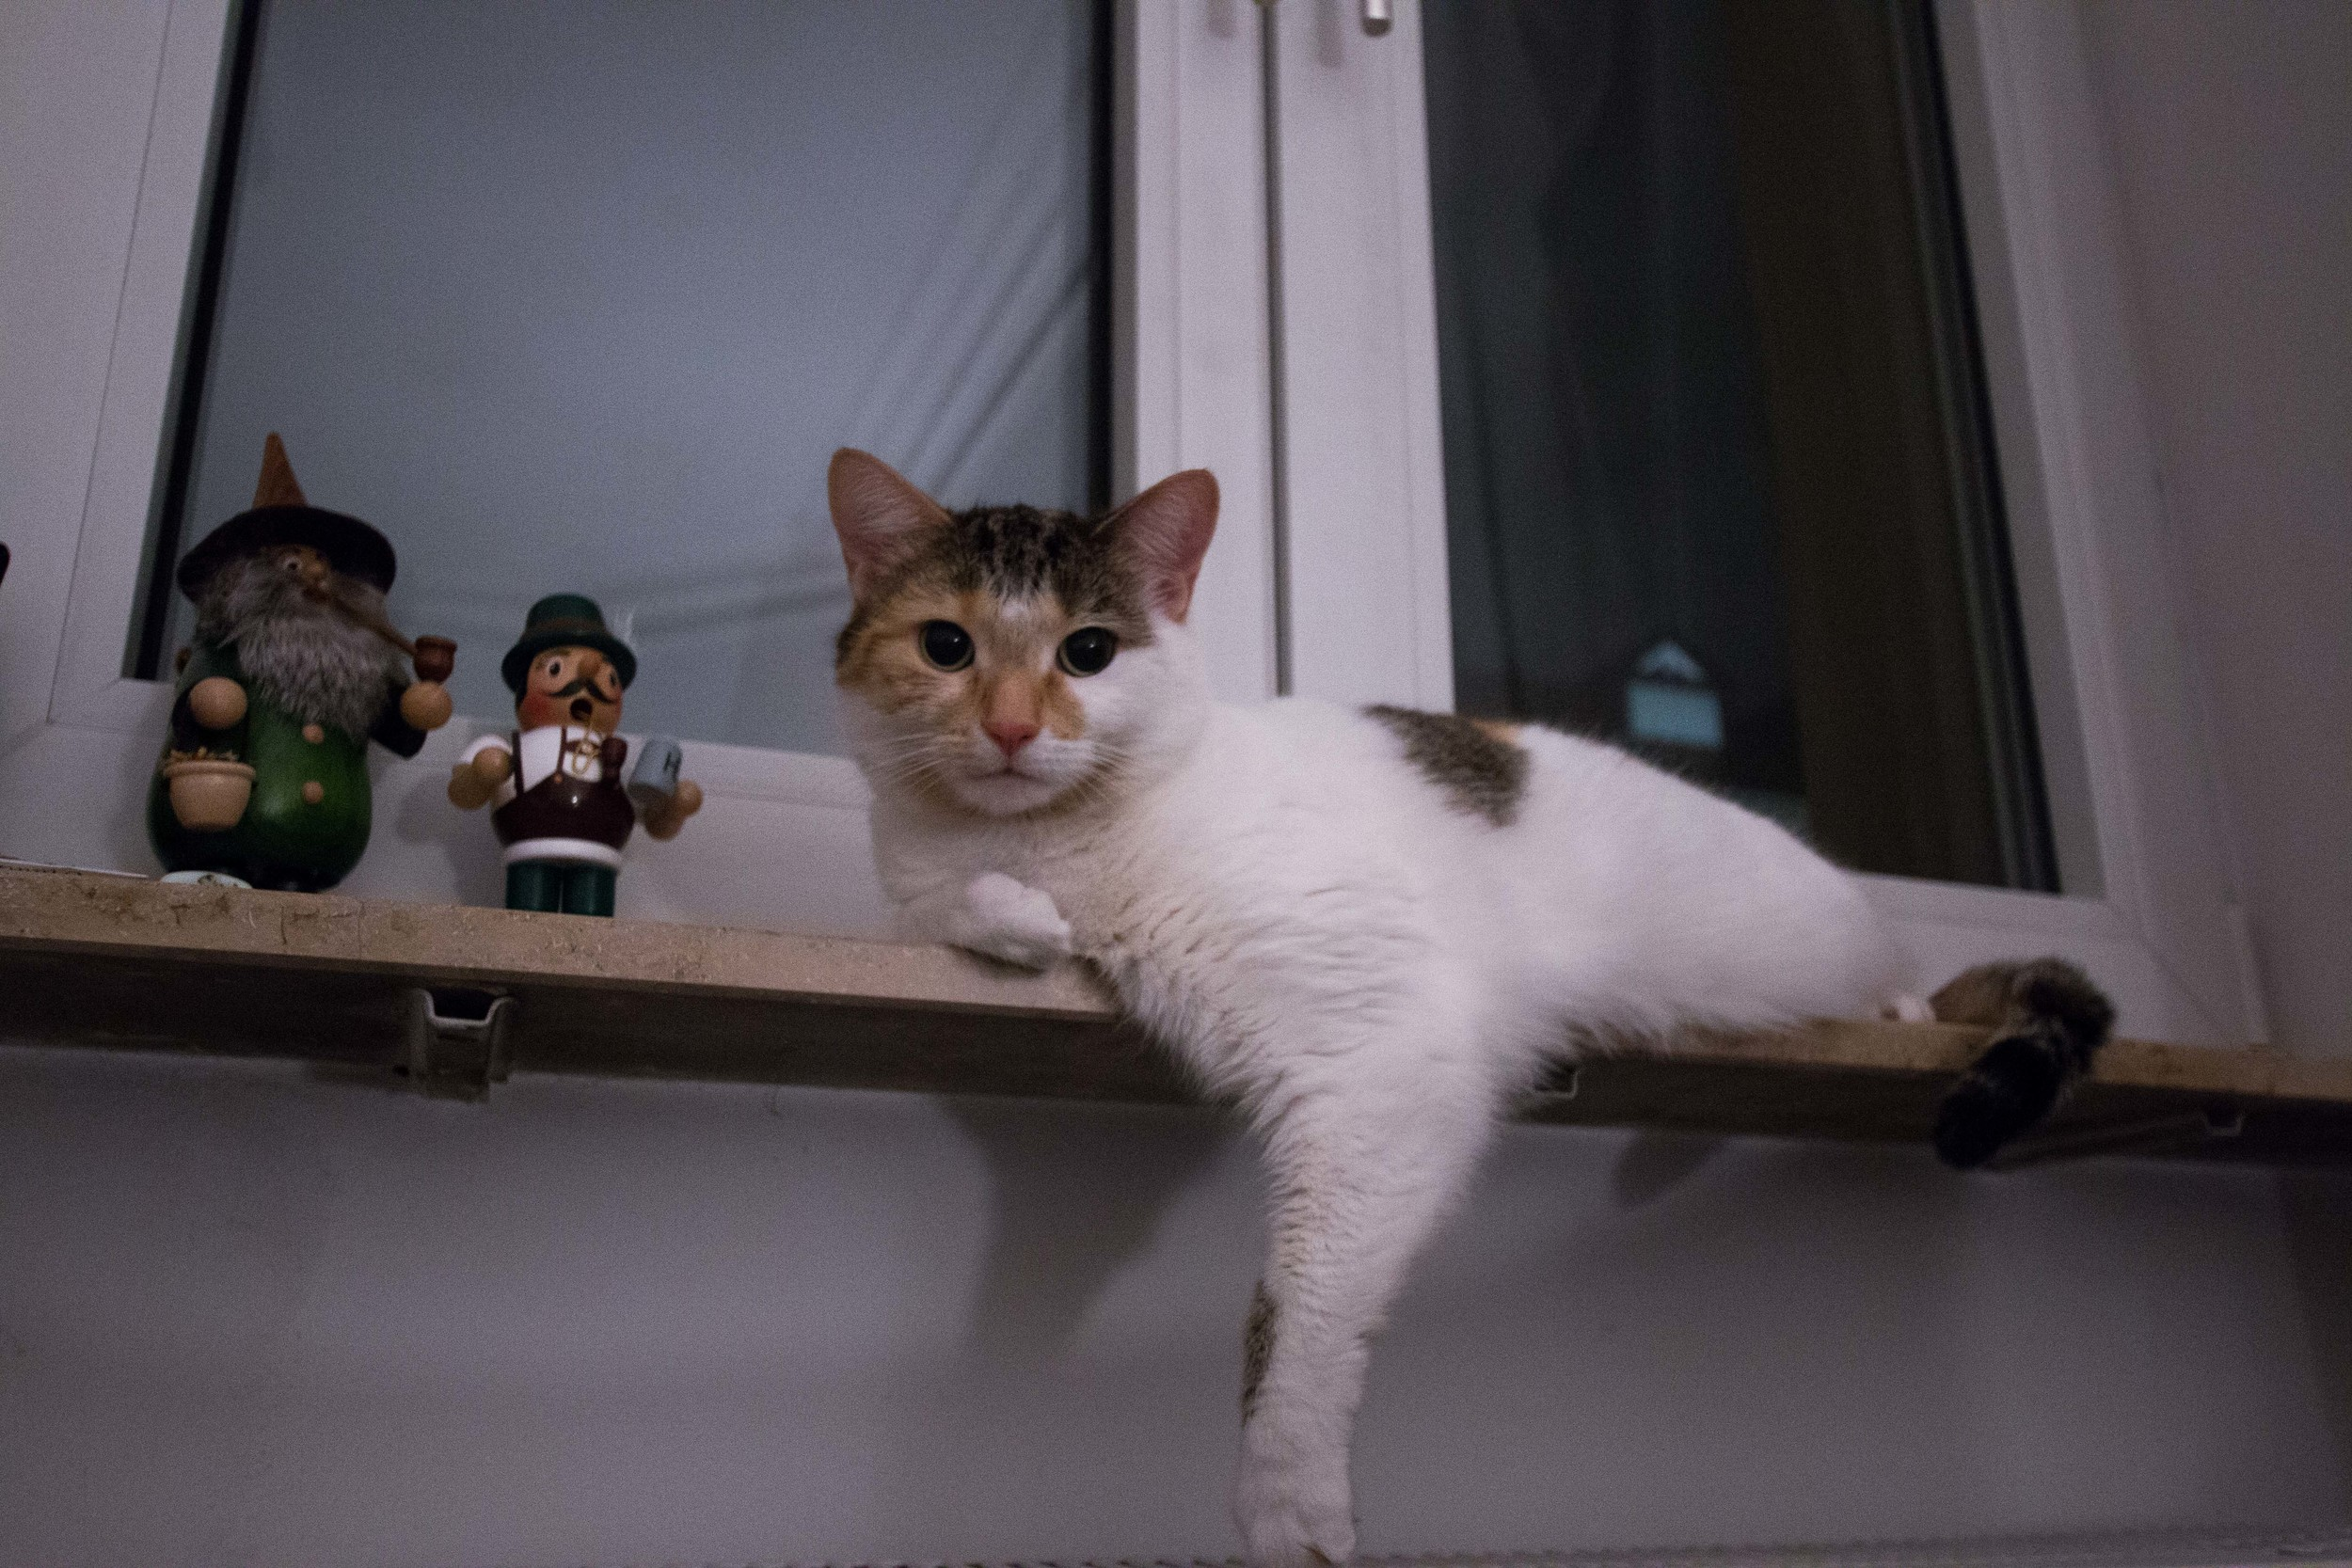 Her new favorite spot, the sill right above the radiator. TheQueen of Sheba is her new name.